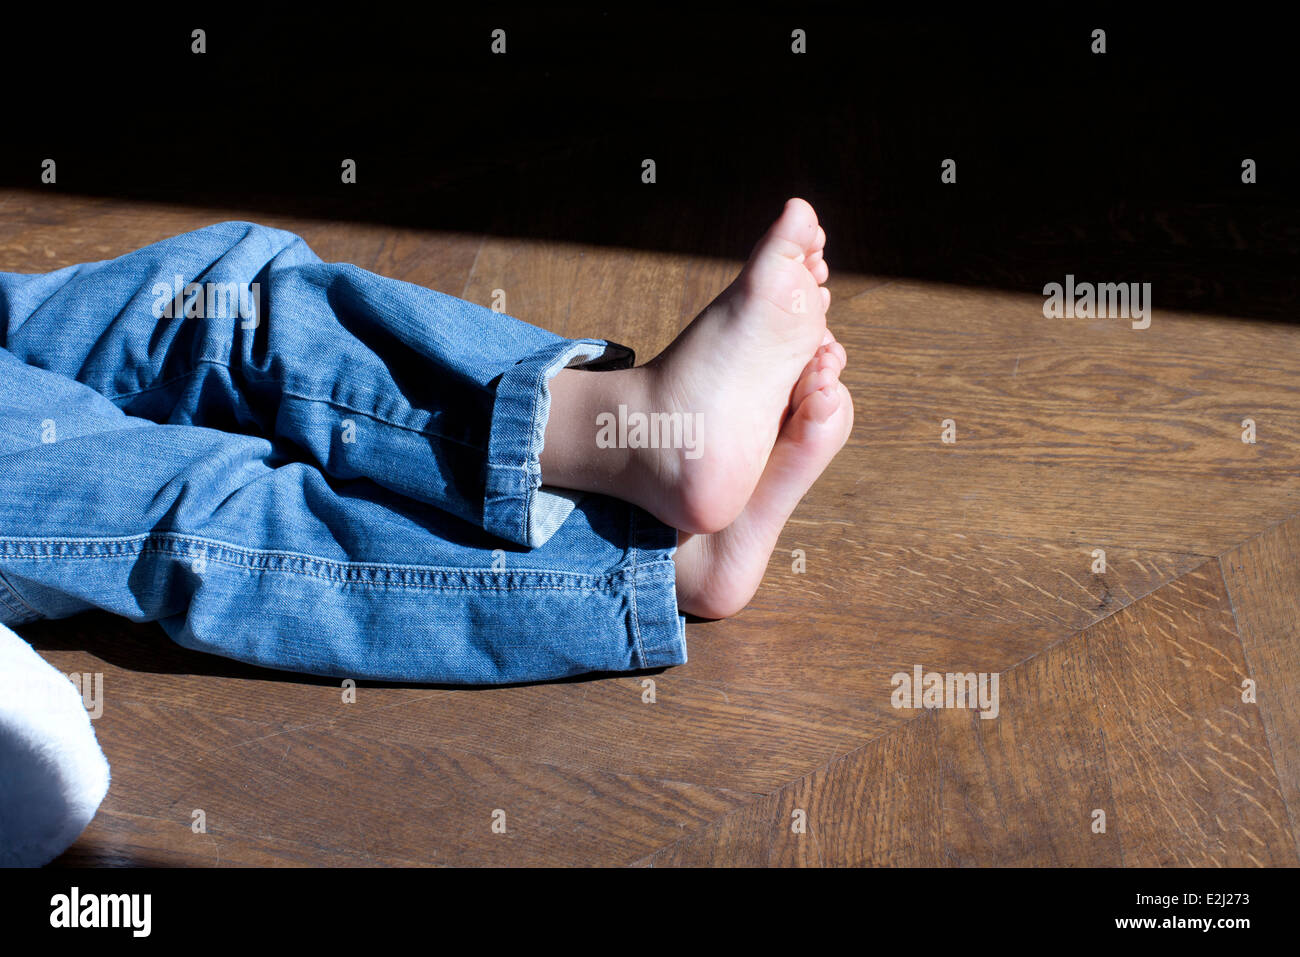 Enfant assis aux pieds nus sur le plancher, low section Photo Stock